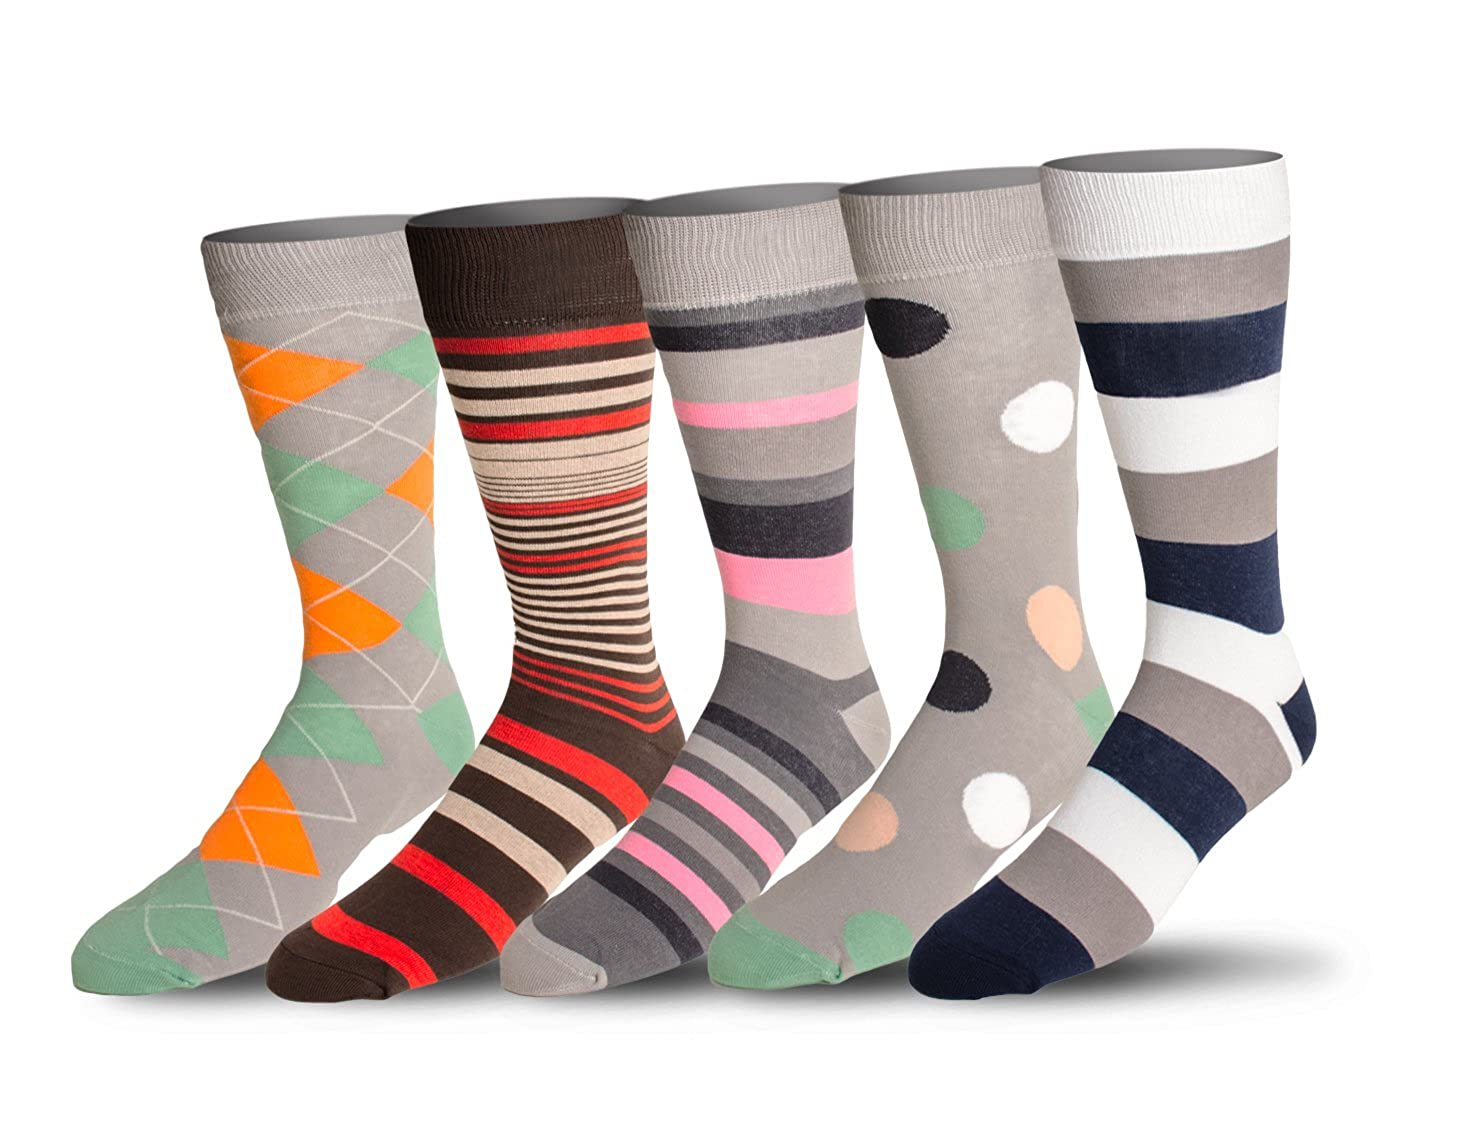 Mens 5 Pack Crew / Dress Socks – Versatile For Any Occasion By VYBE Size (9-13) Combo 10)